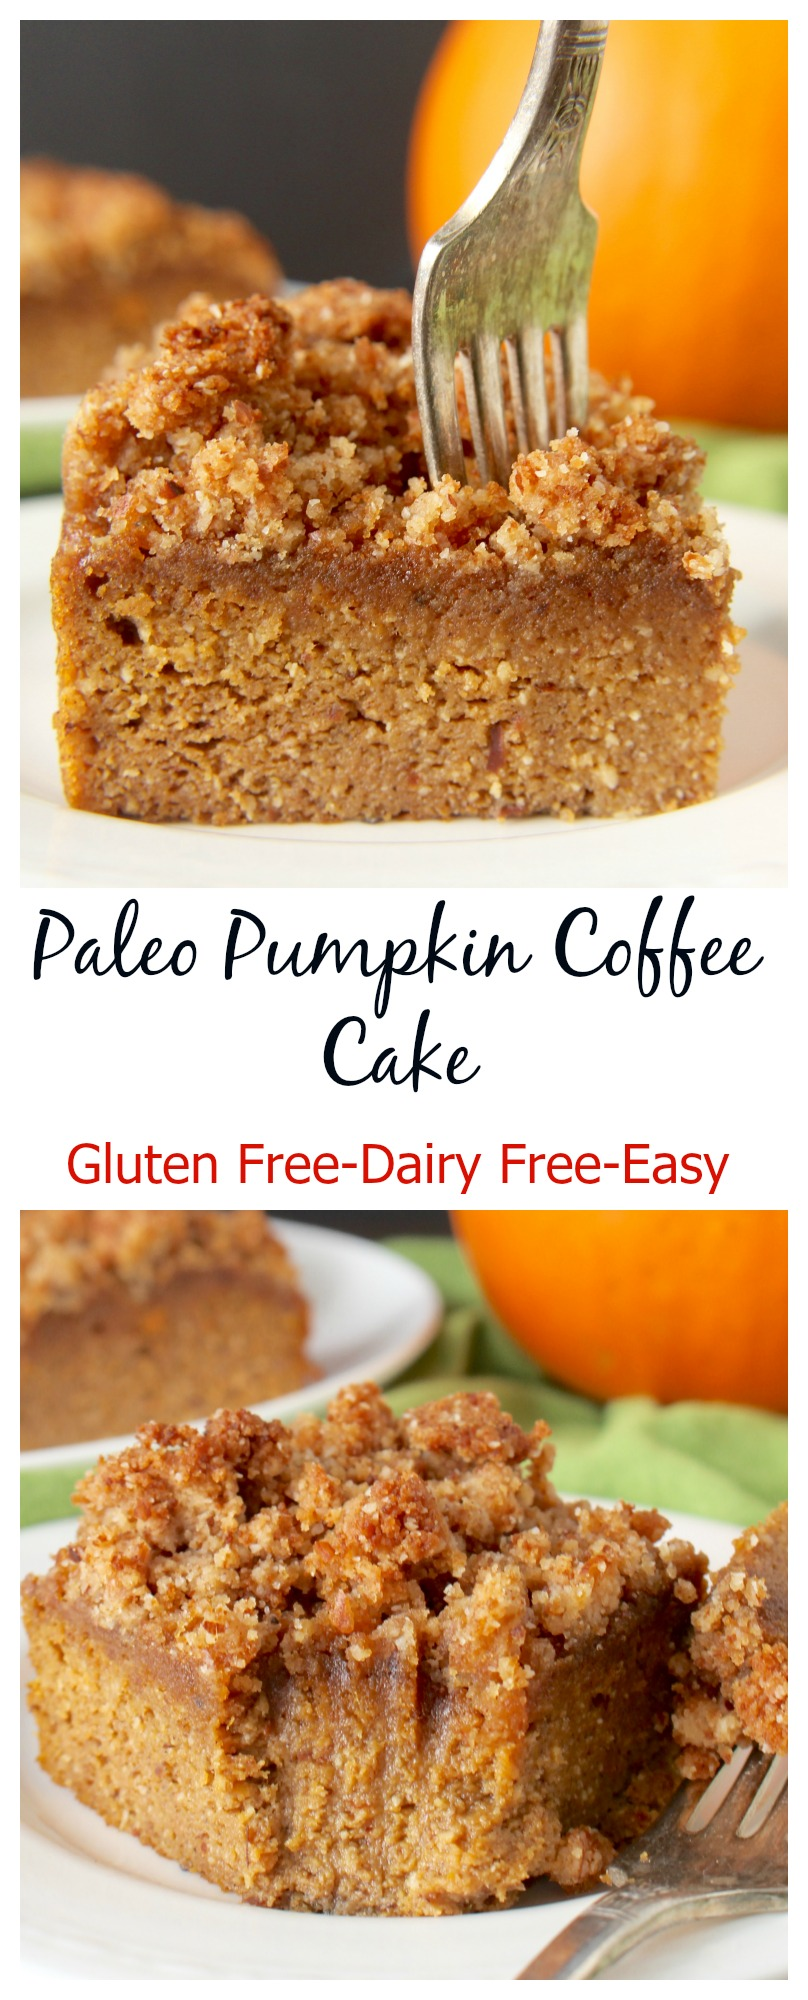 This Paleo Pumpkin Coffee Cake is the perfect fall dessert. A tender cake topped with an irresistible crumb topping. Gluten free, dairy free, and naturally sweetened.